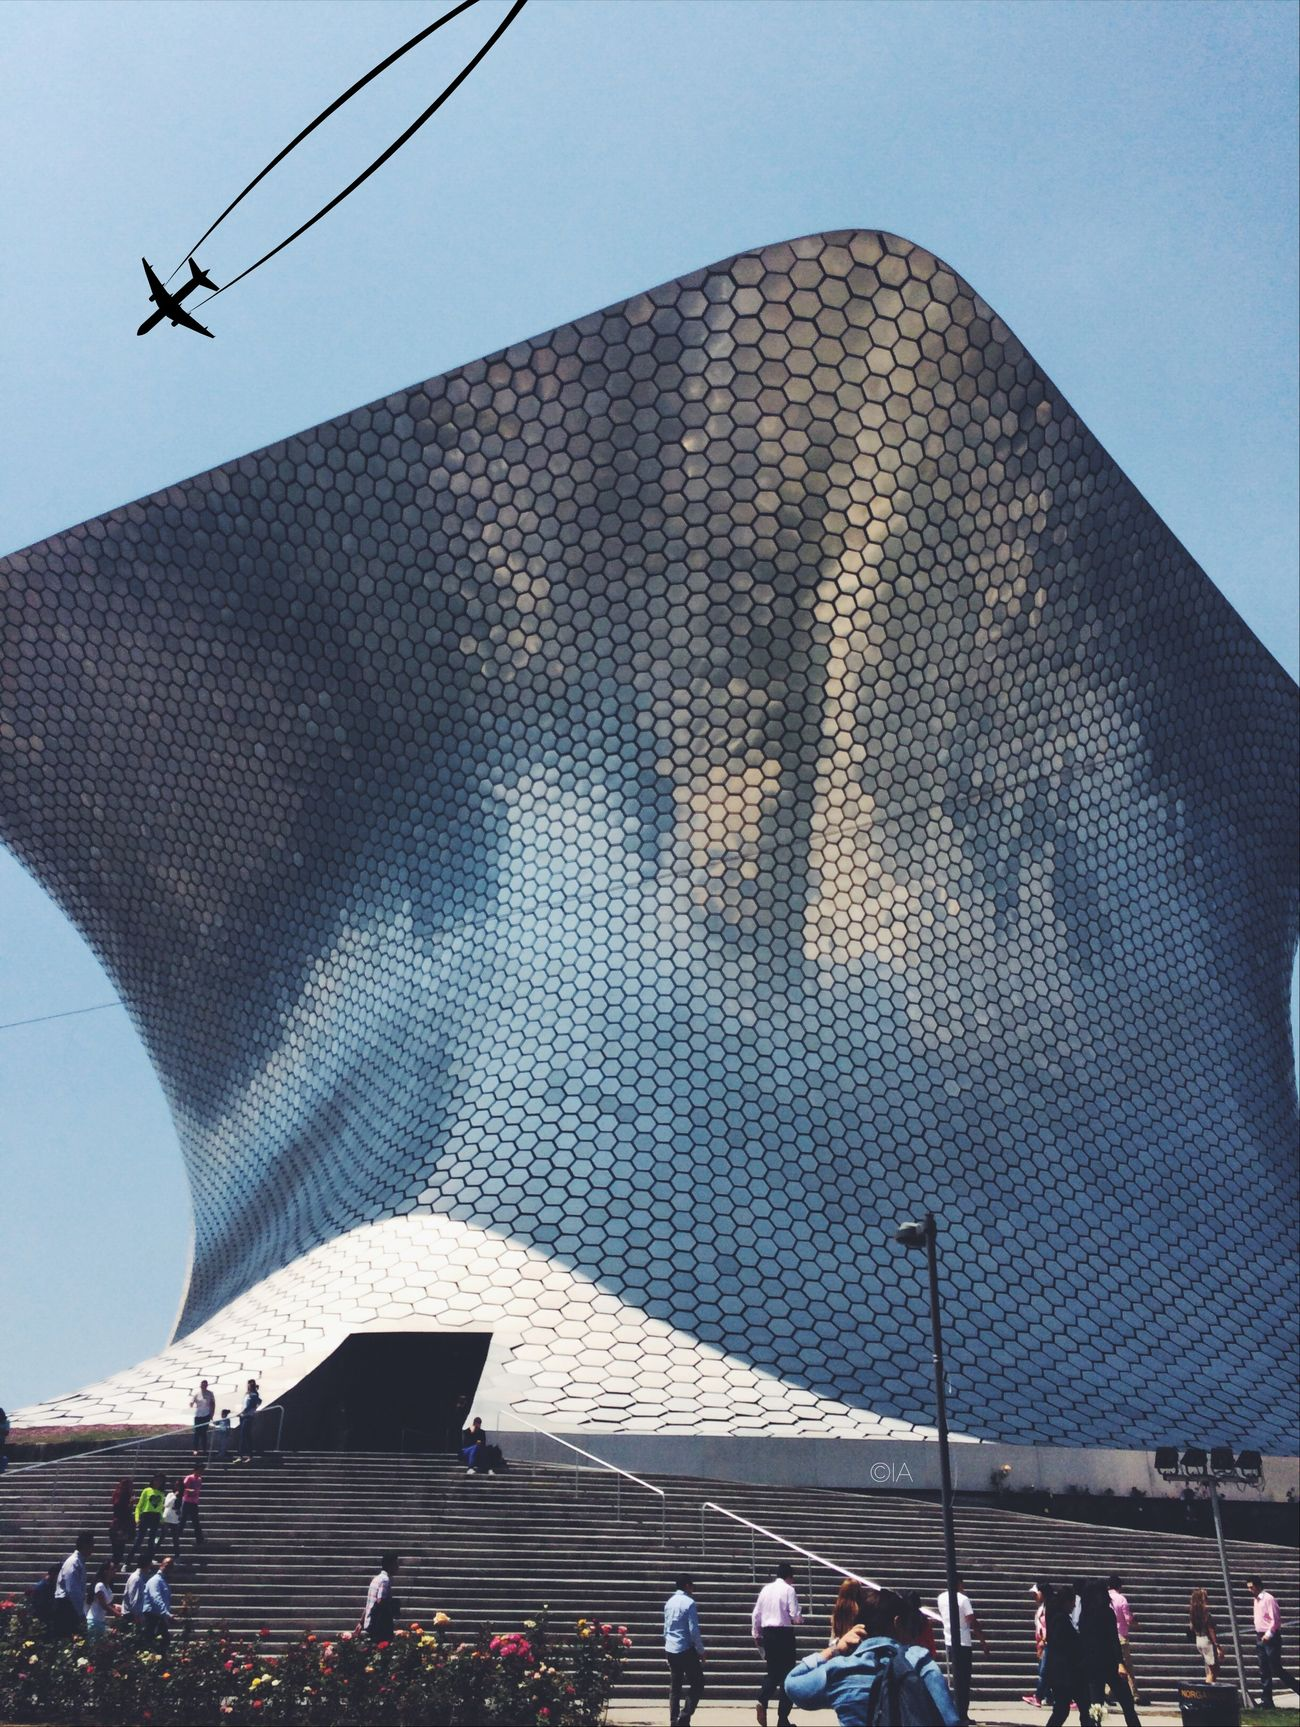 South Streetphotography EyeEm Best Shots - The Streets Museo Soumaya, México city DF 💚❤️🇮🇹💚❤️ Museo Soumaya